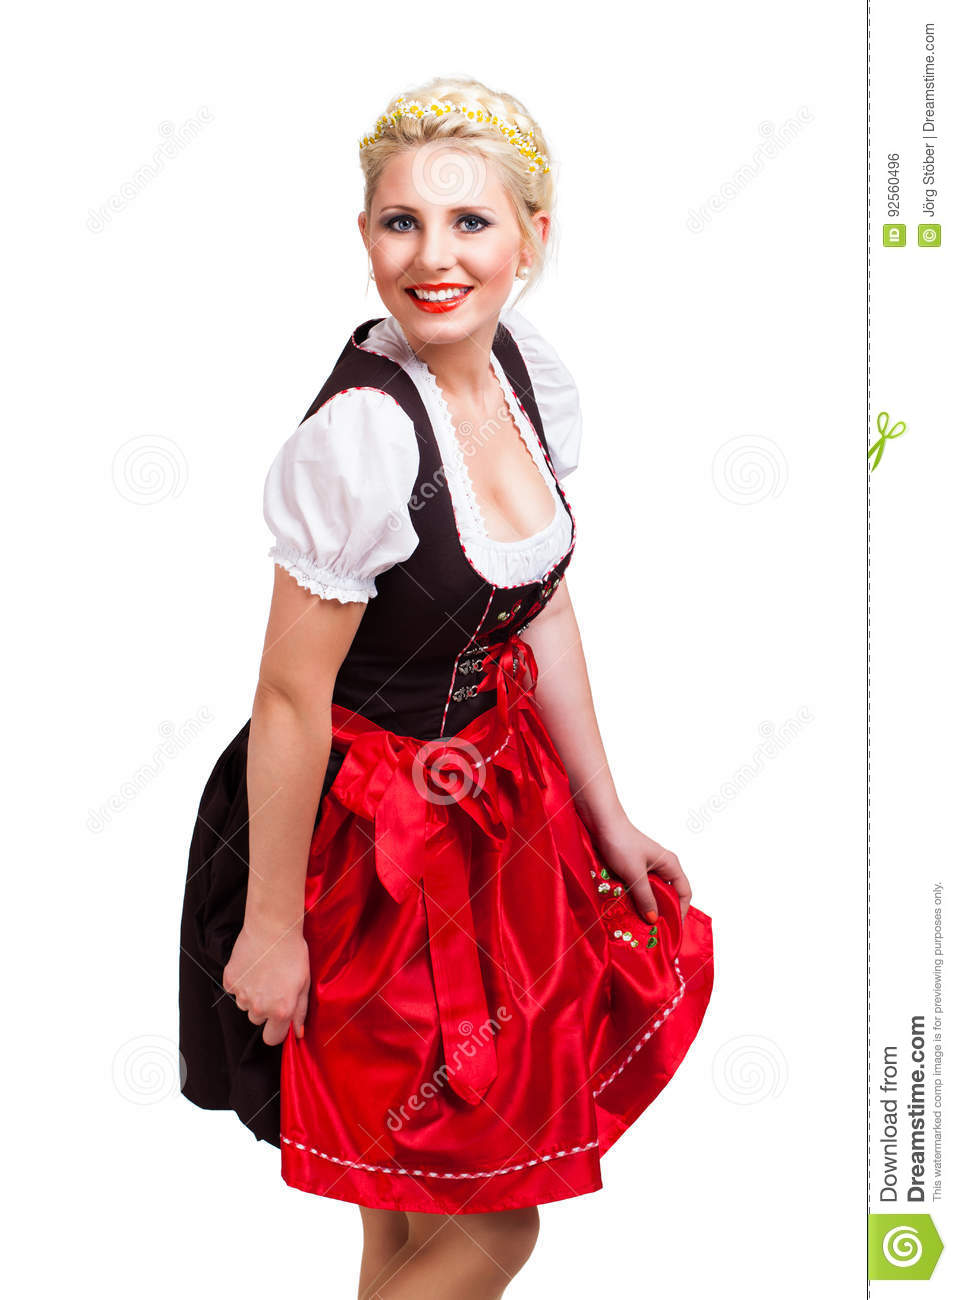 Beautiful woman in a traditional bavarian dirndl